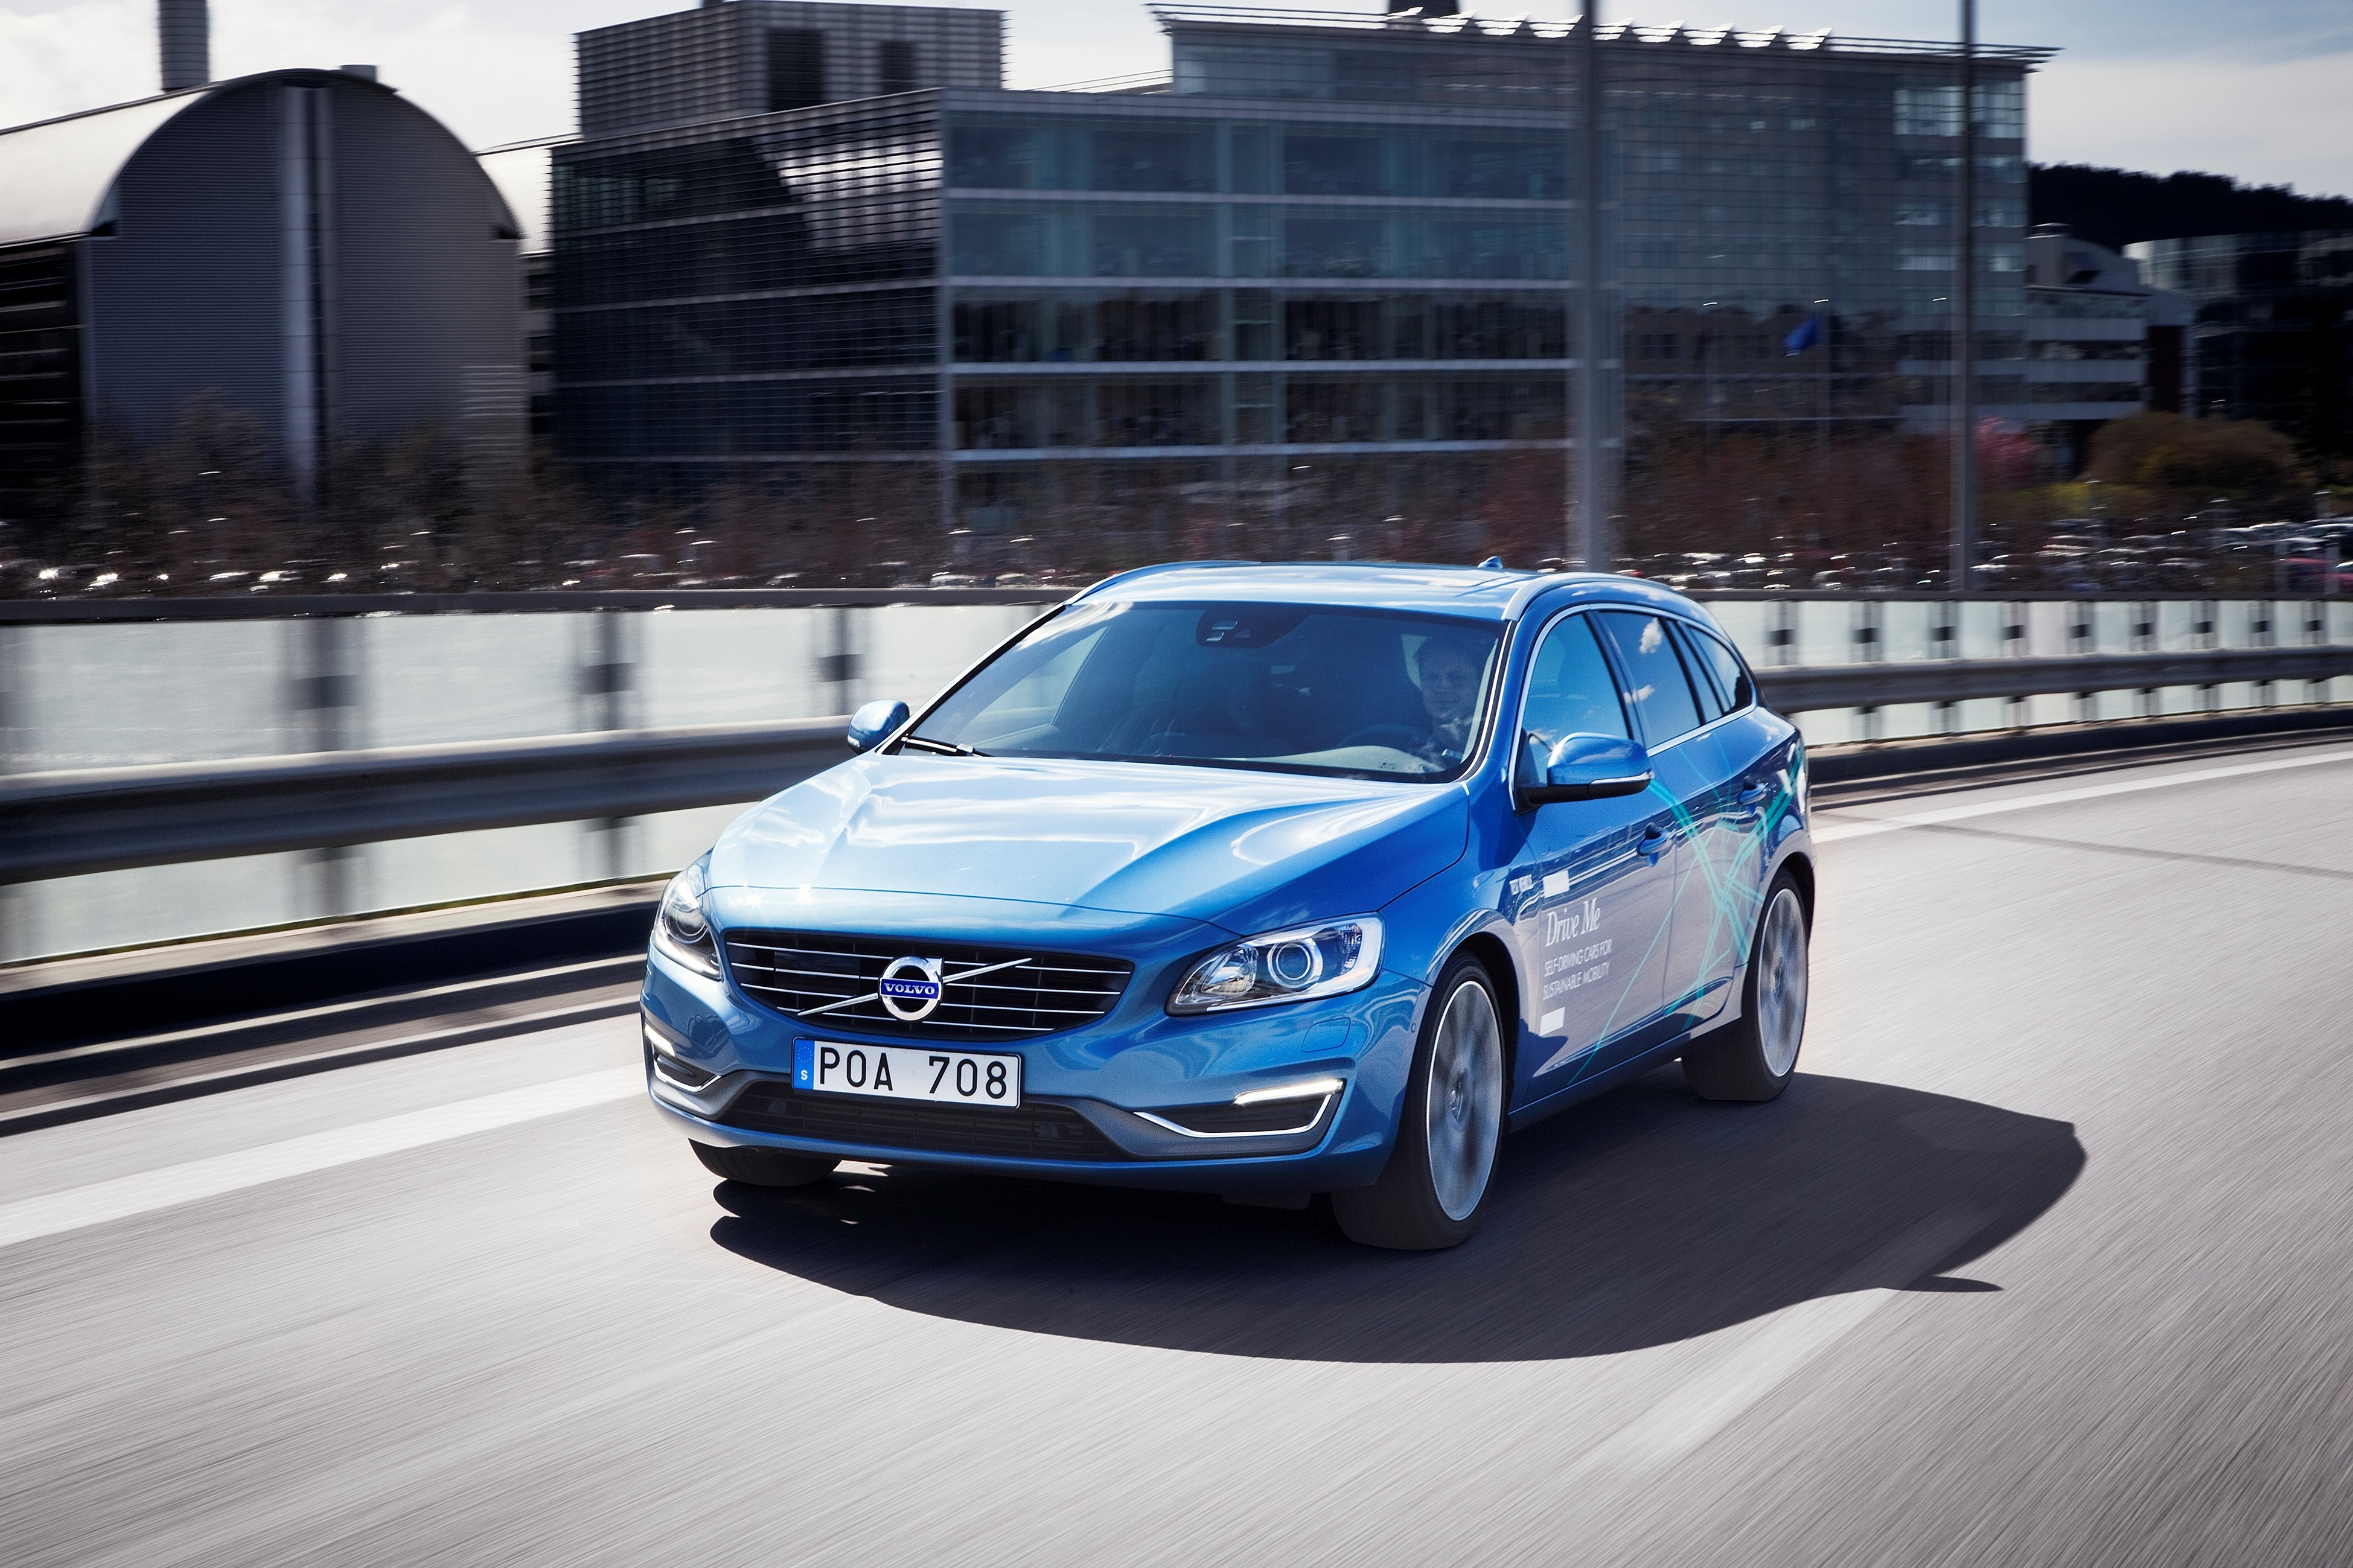 Volvo Cars and Autoliv Partner Up for Self-Driving Car Trials that Are Set for 2017 - autoevolution